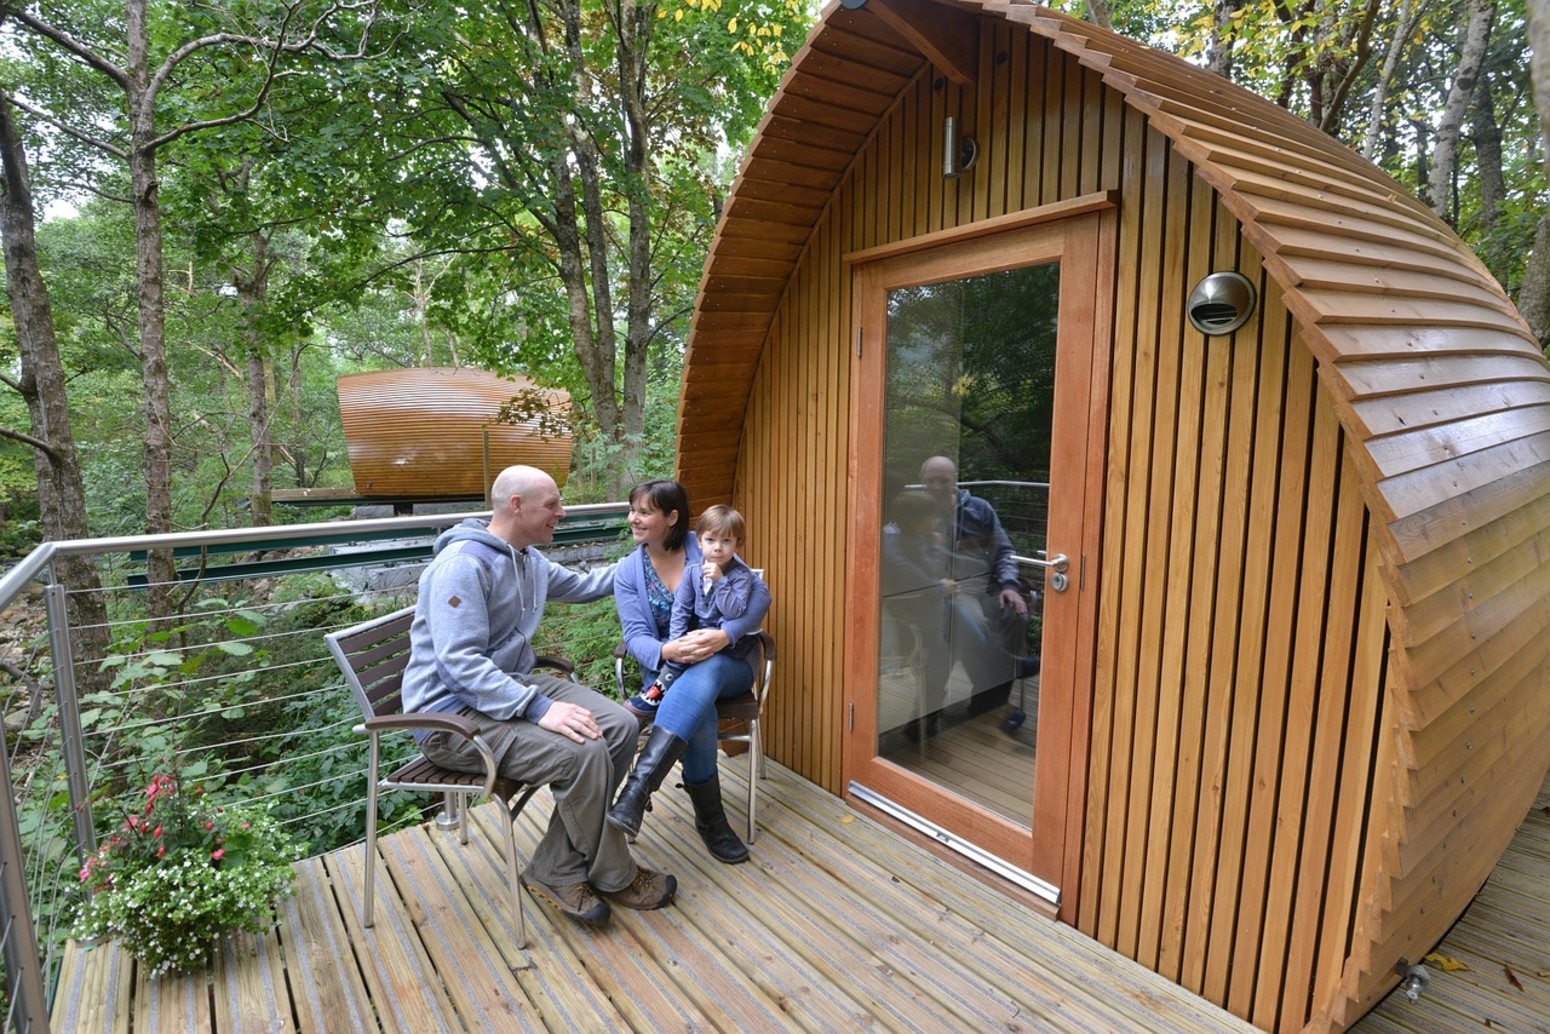 An example of glamping in the UK